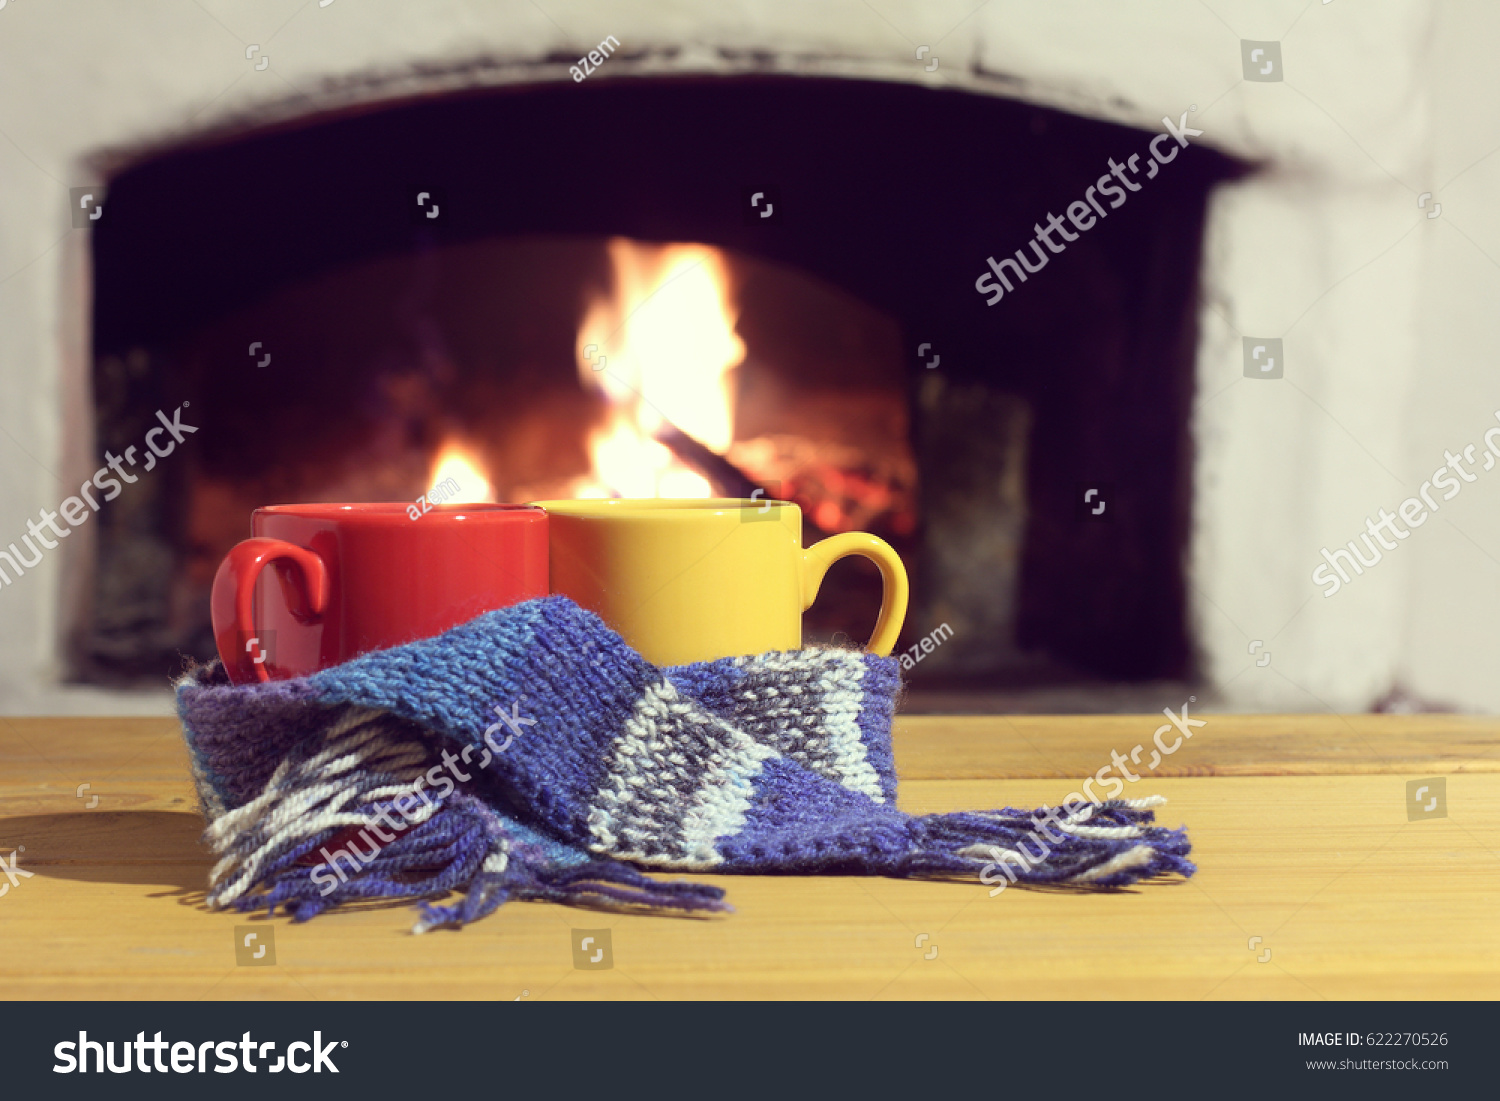 red yellow mugs blue scarf on stock photo 622270526 shutterstock